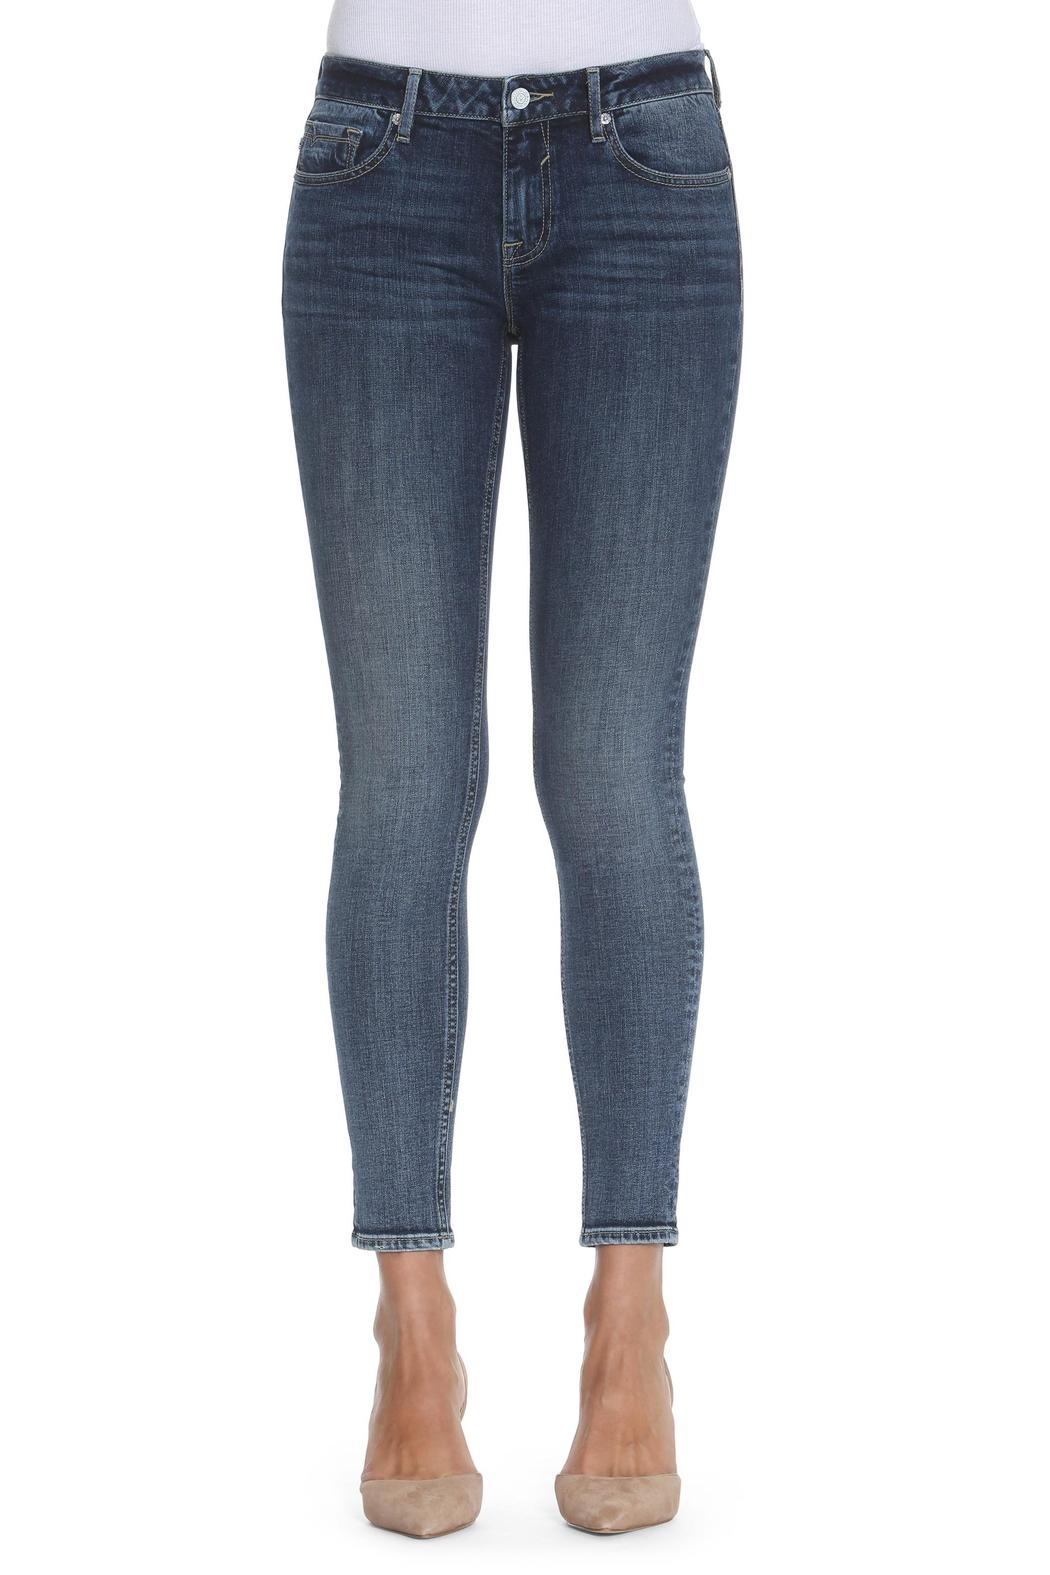 Vigoss Dark-Wash Skinny Jeans - Main Image